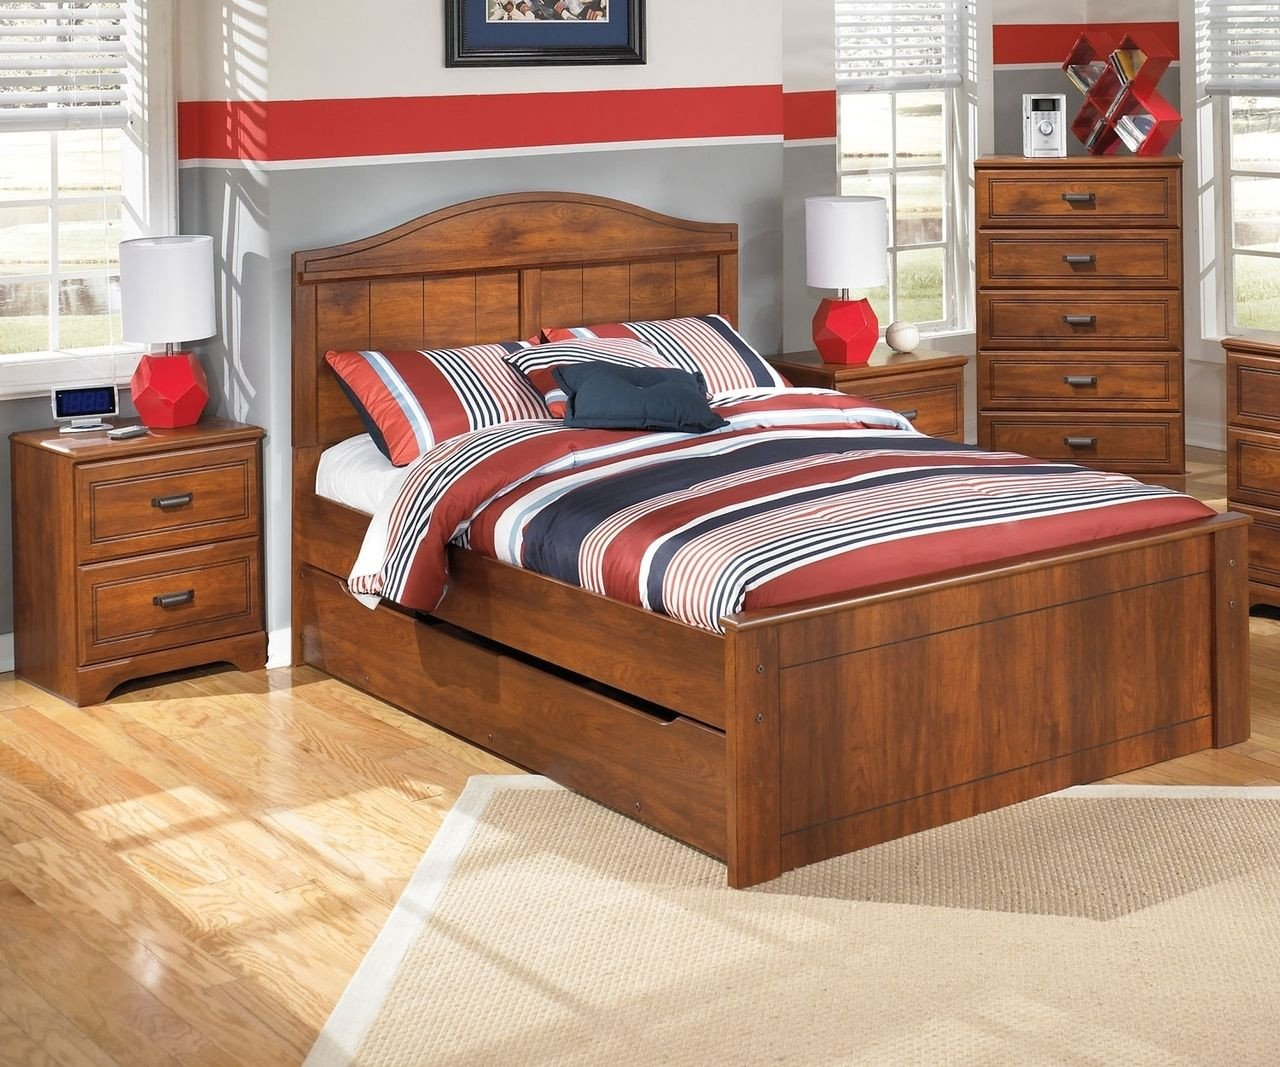 Kids Twin Bedroom Set Beautiful Pin On Furniture